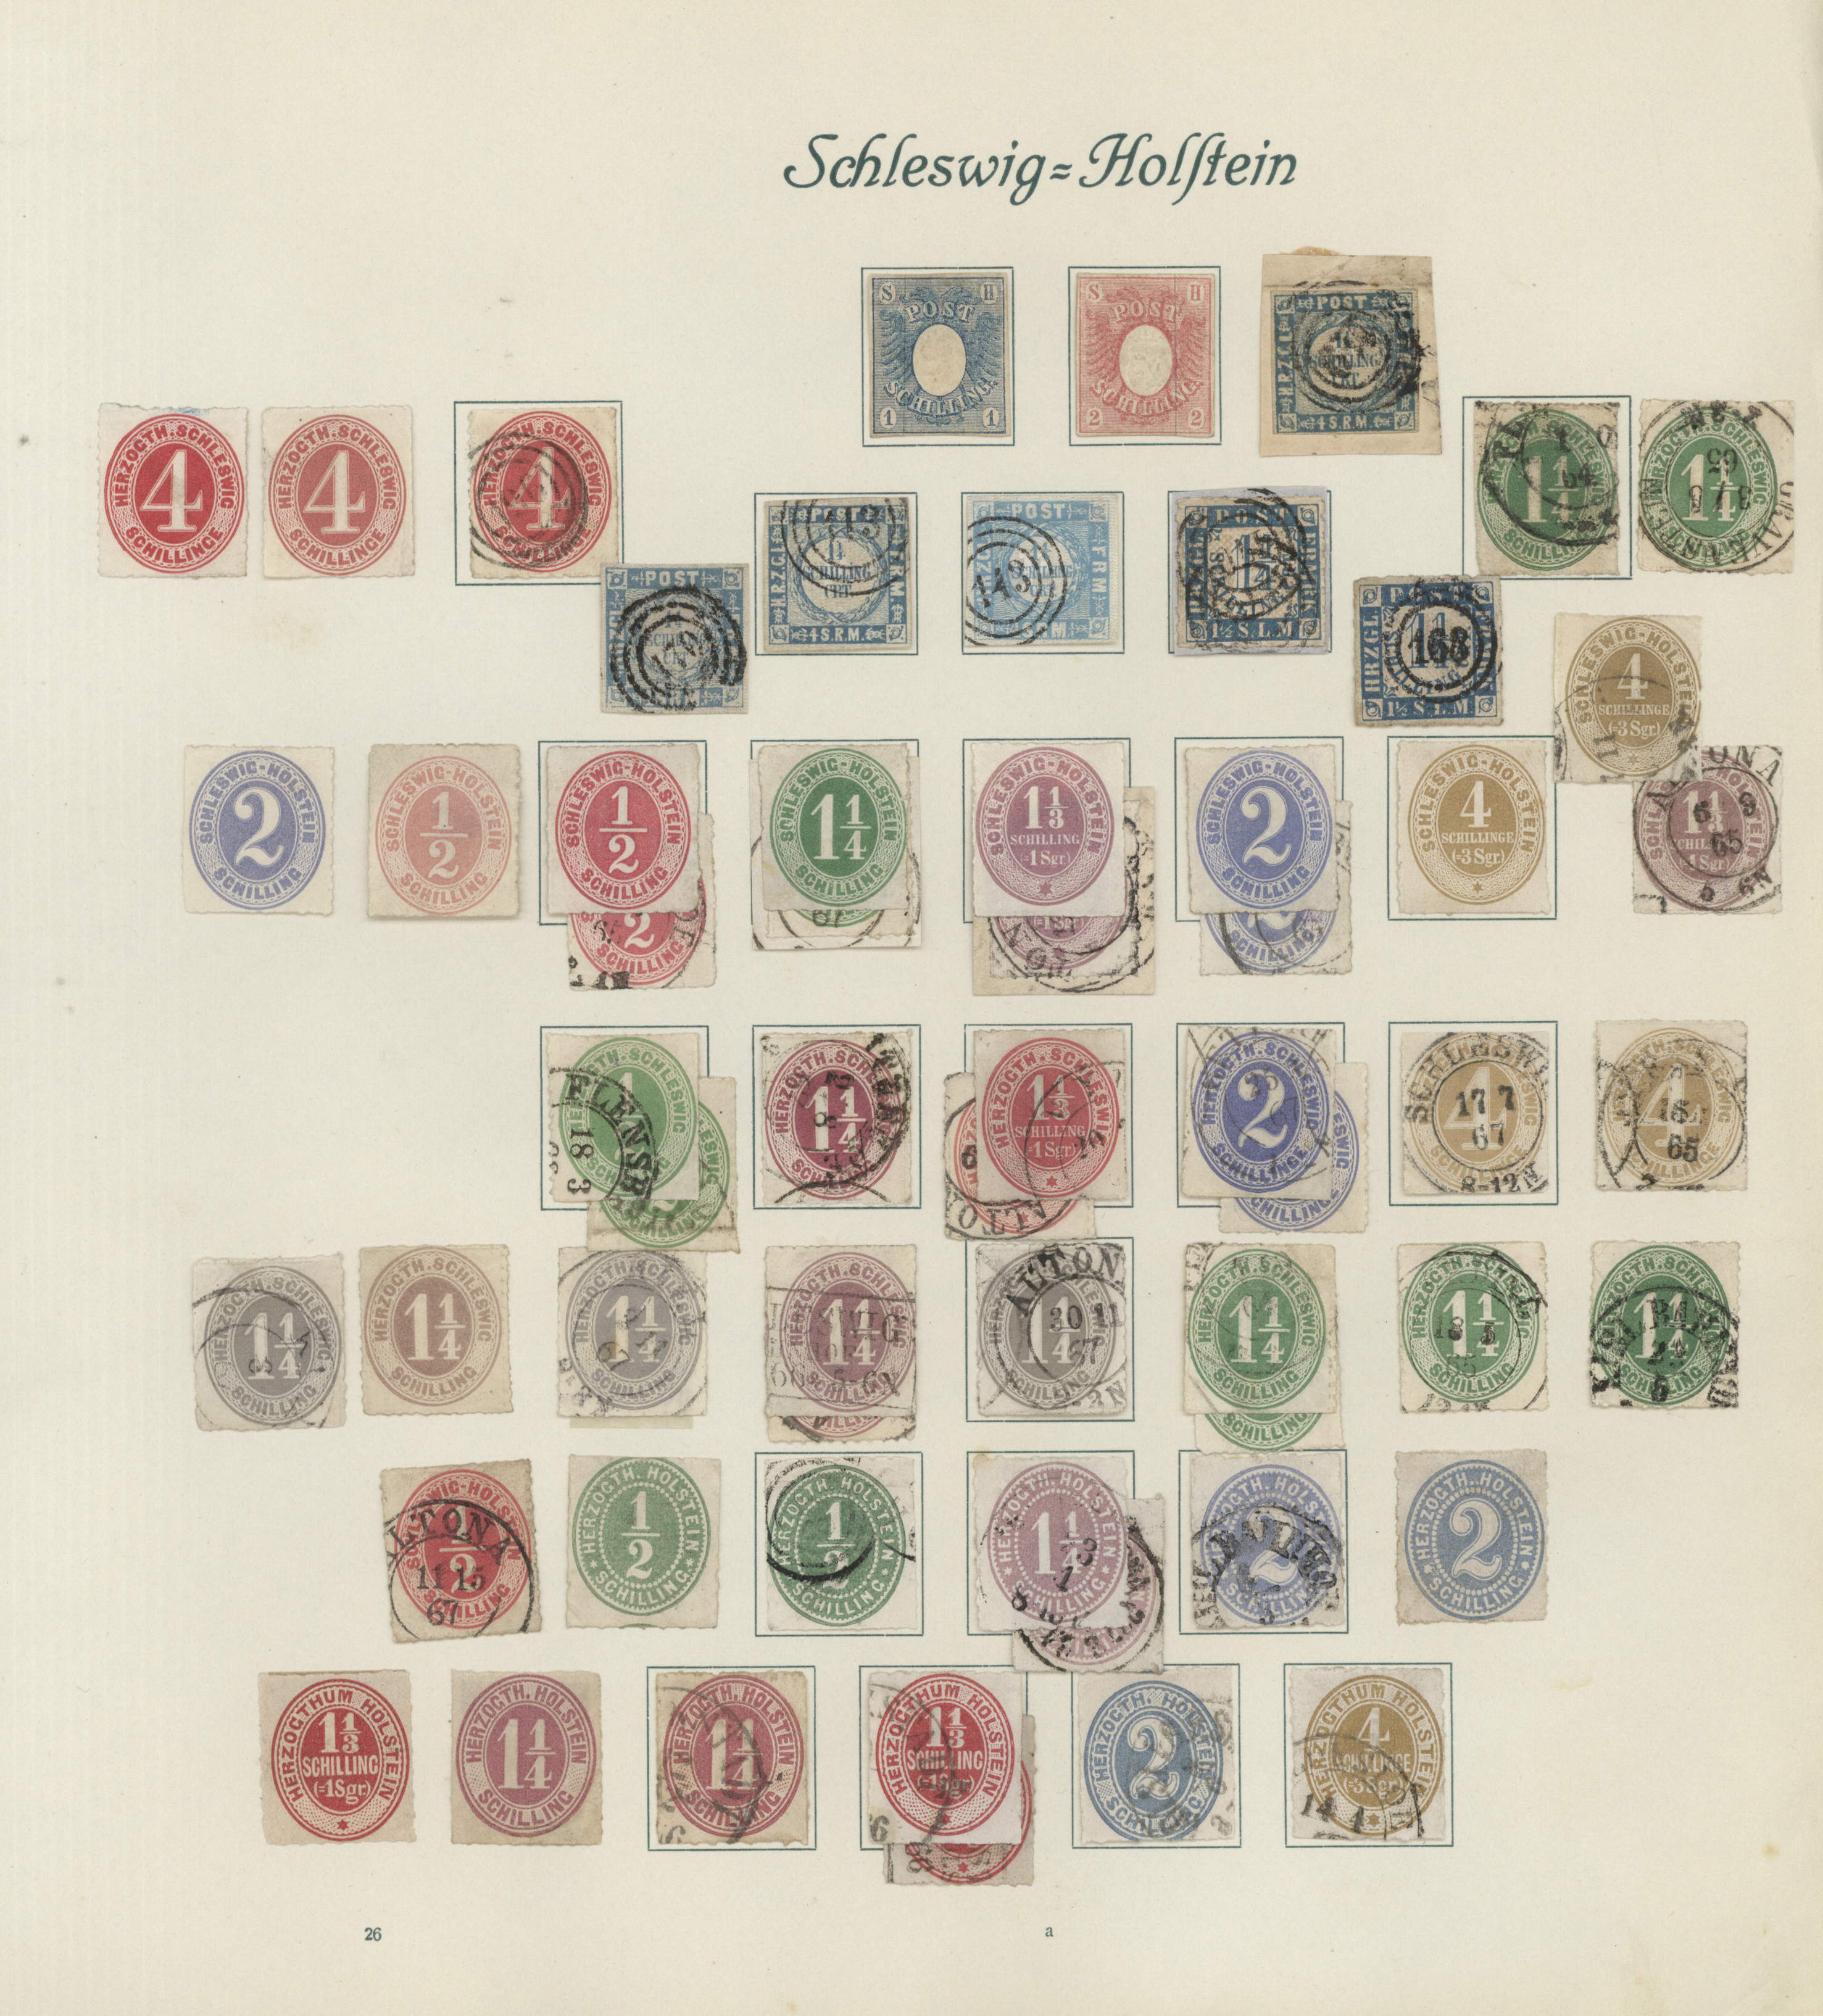 Lot 36475 - Schleswig-Holstein - Marken und Briefe  -  Auktionshaus Christoph Gärtner GmbH & Co. KG Collections Germany,  Collections Supplement, Surprise boxes #39 Day 7